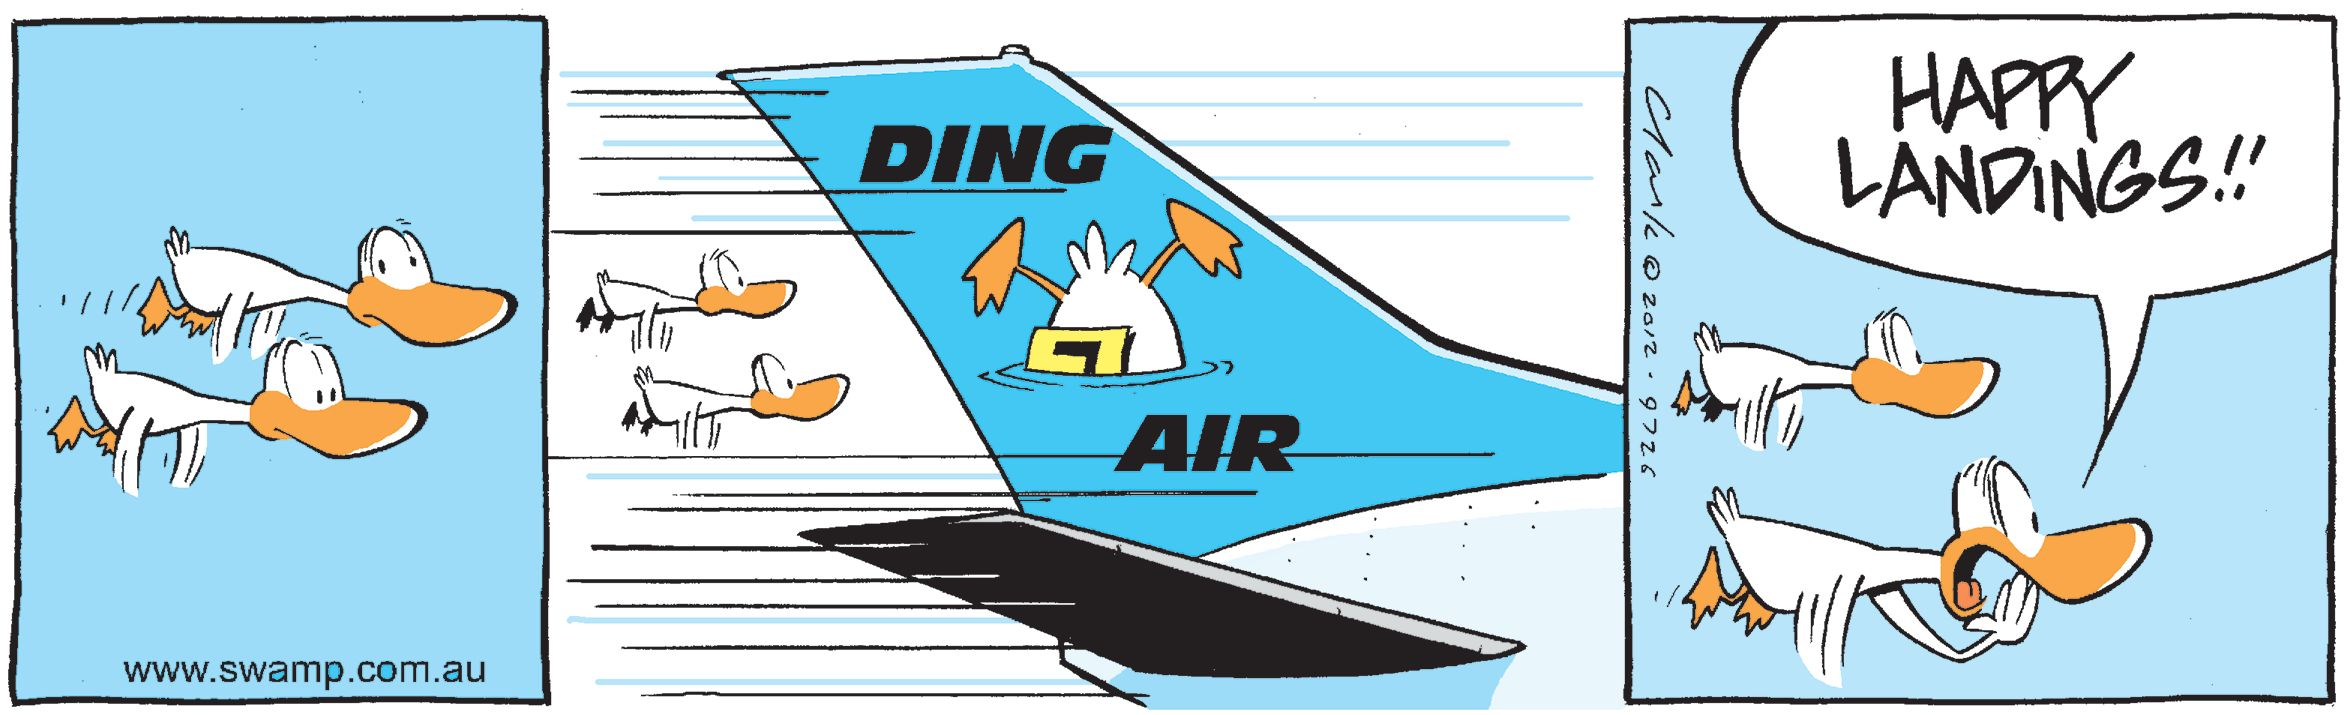 Ding Duck Airline Flying